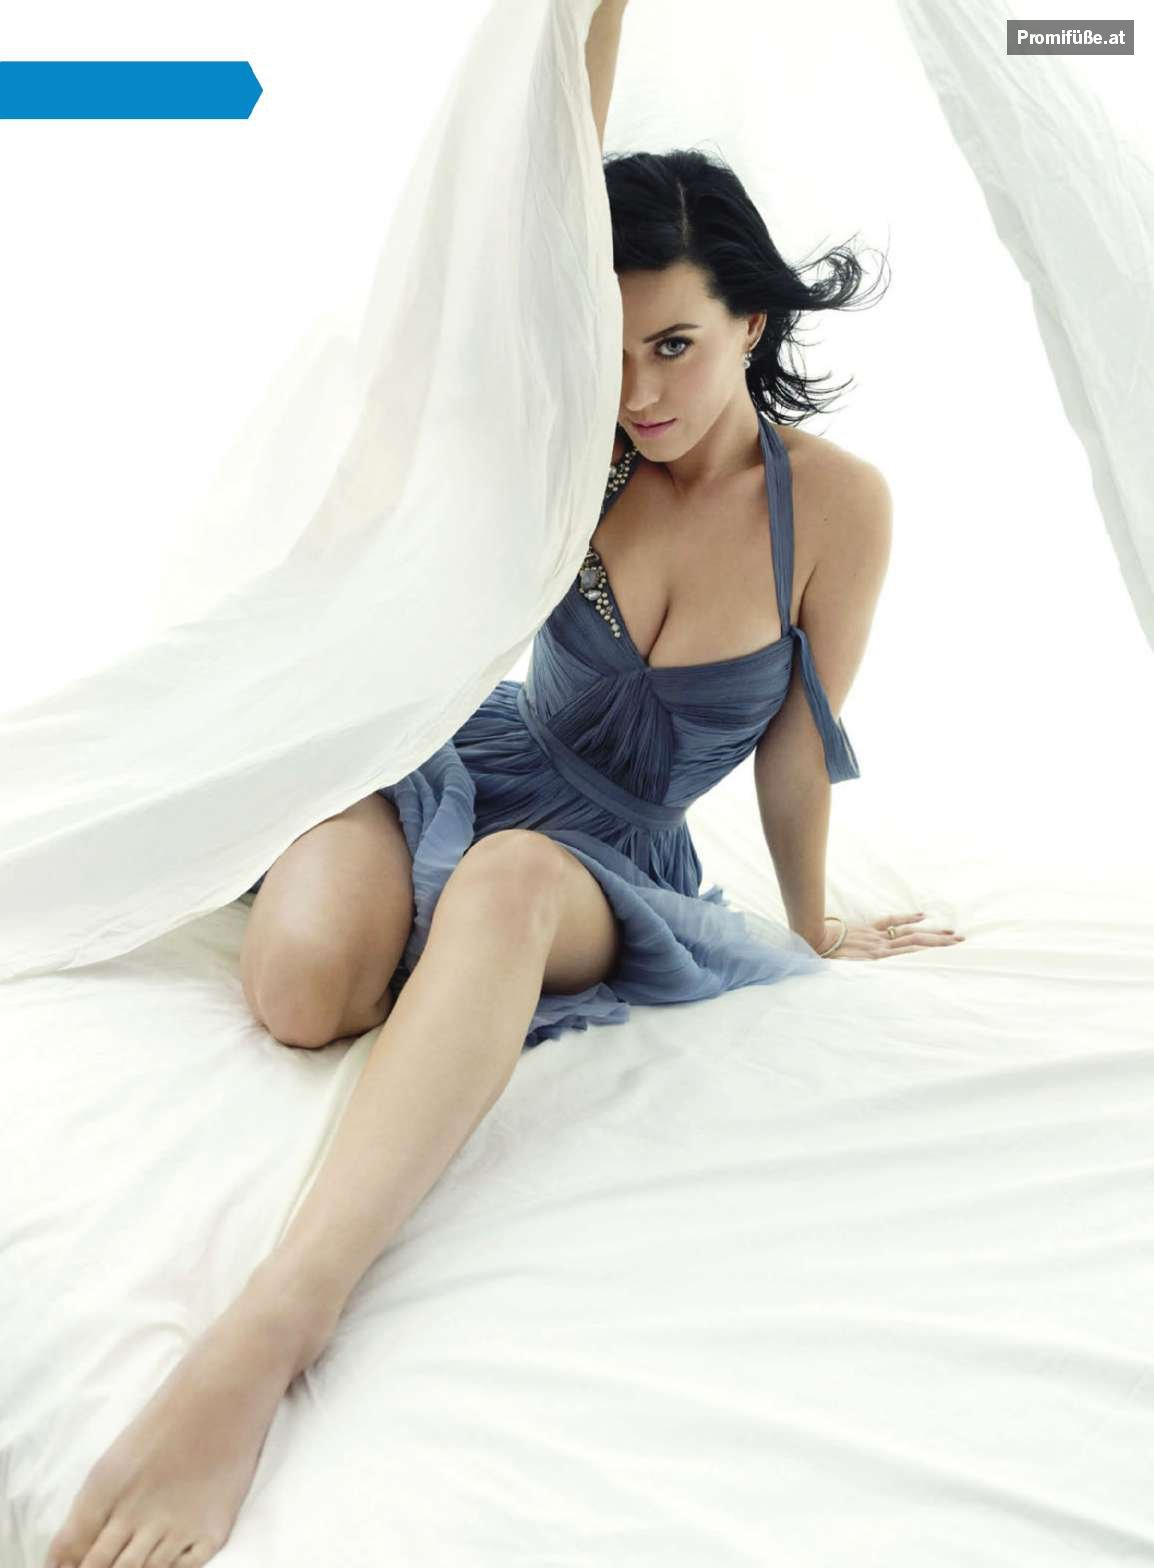 Katy Perry Feet Katy Perry Feet Katy Perry Feet